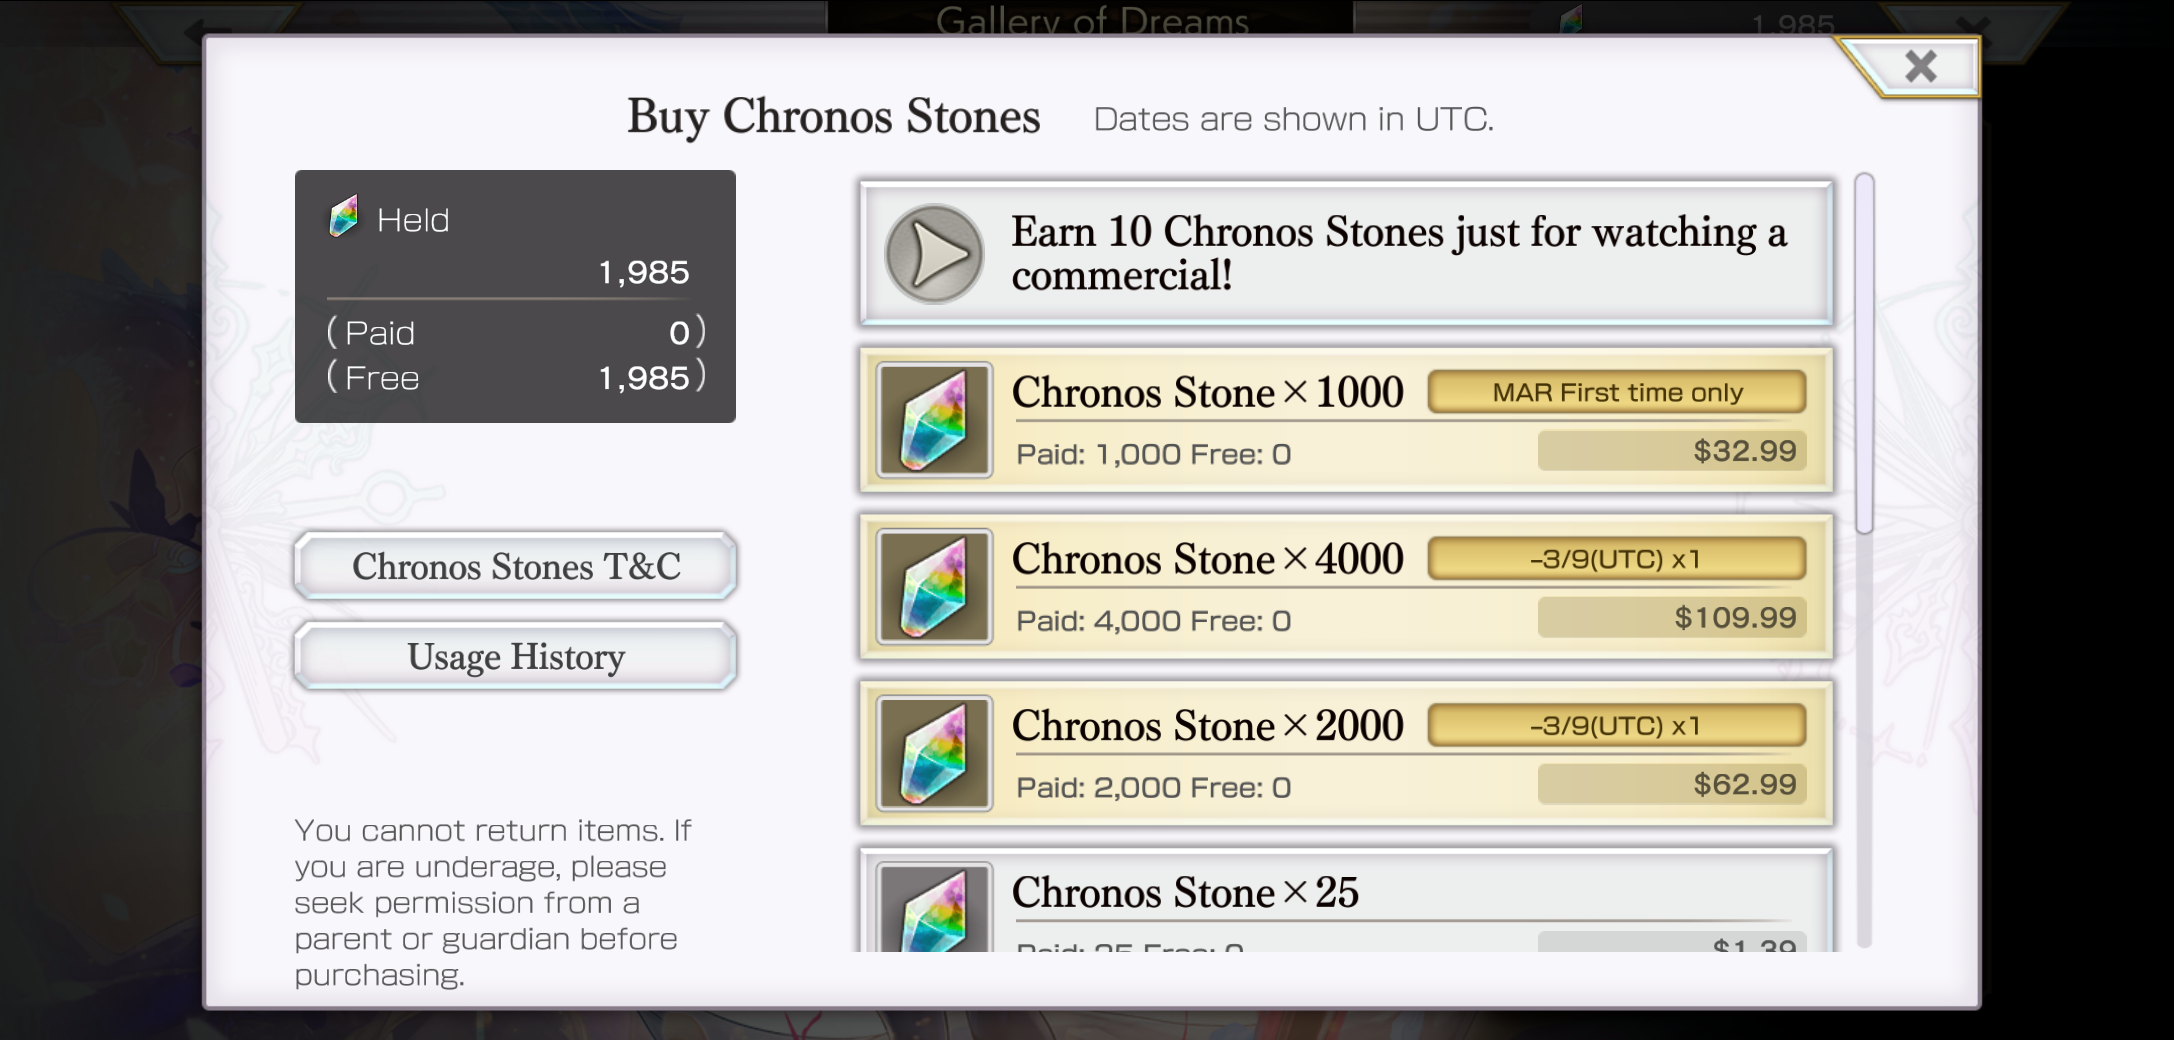 The 'Buy Chronos Stones' page which shows different purchase amounts for the gems.